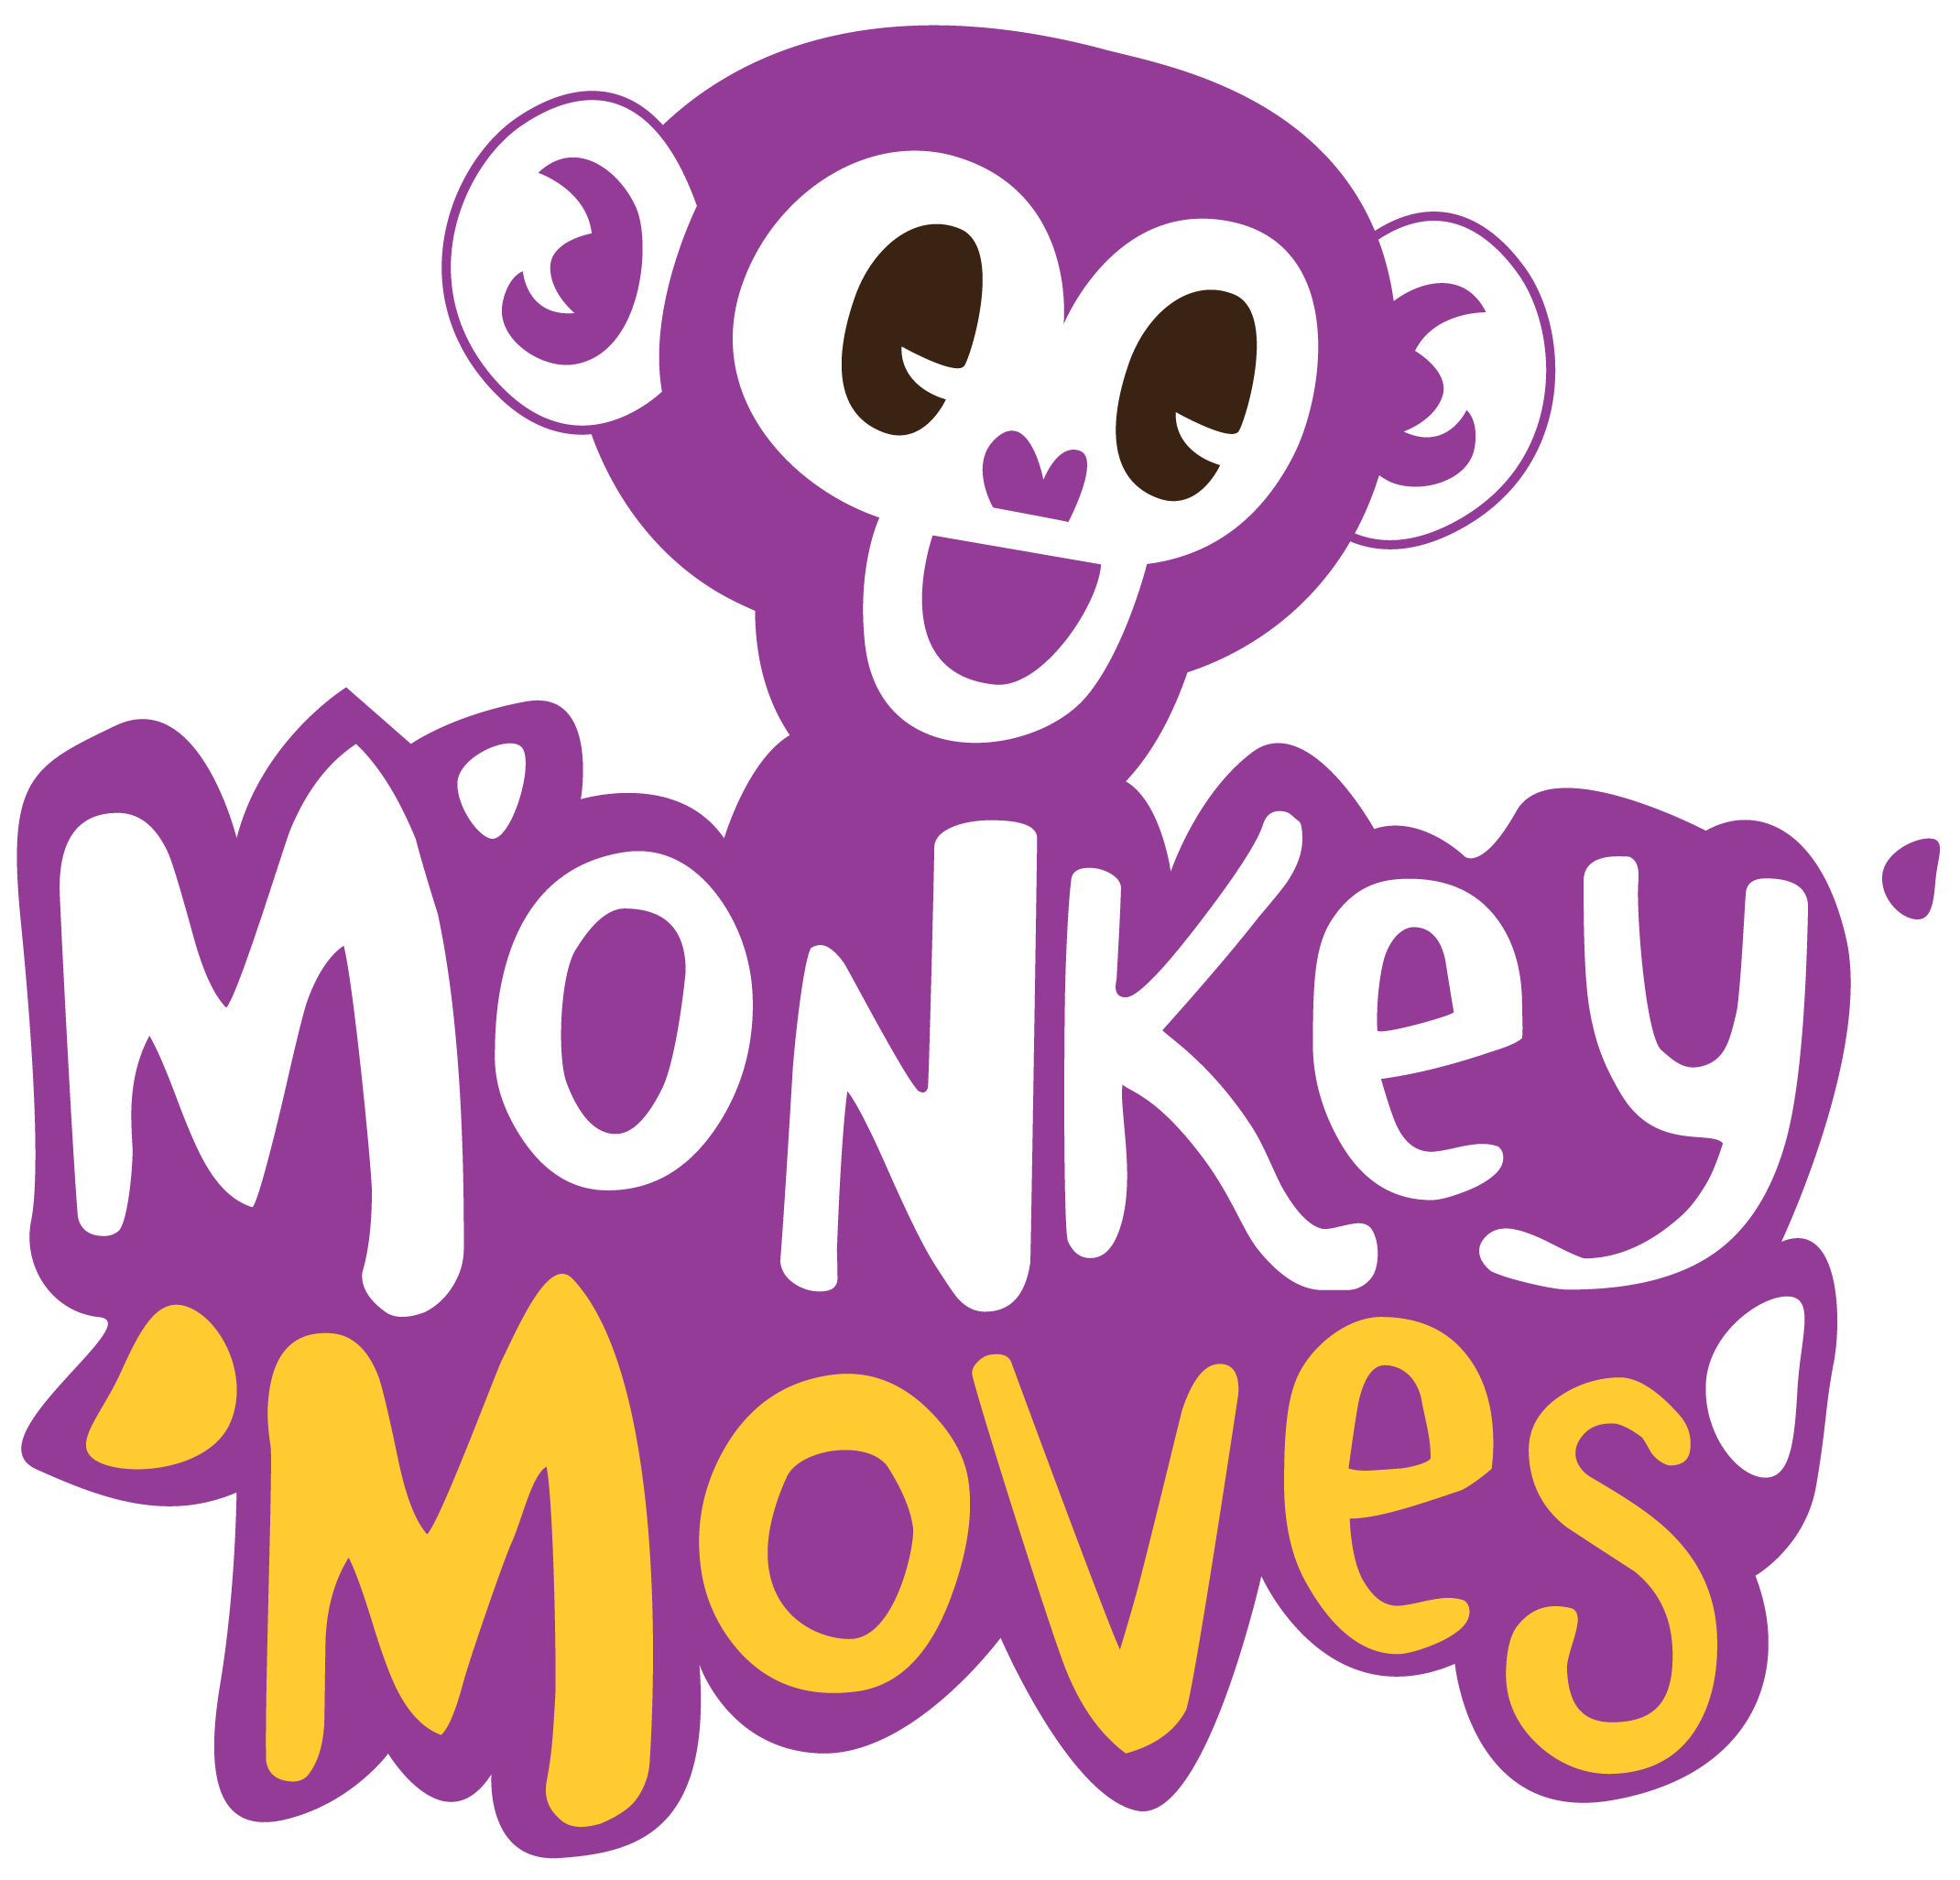 LOGO Monkey Moves